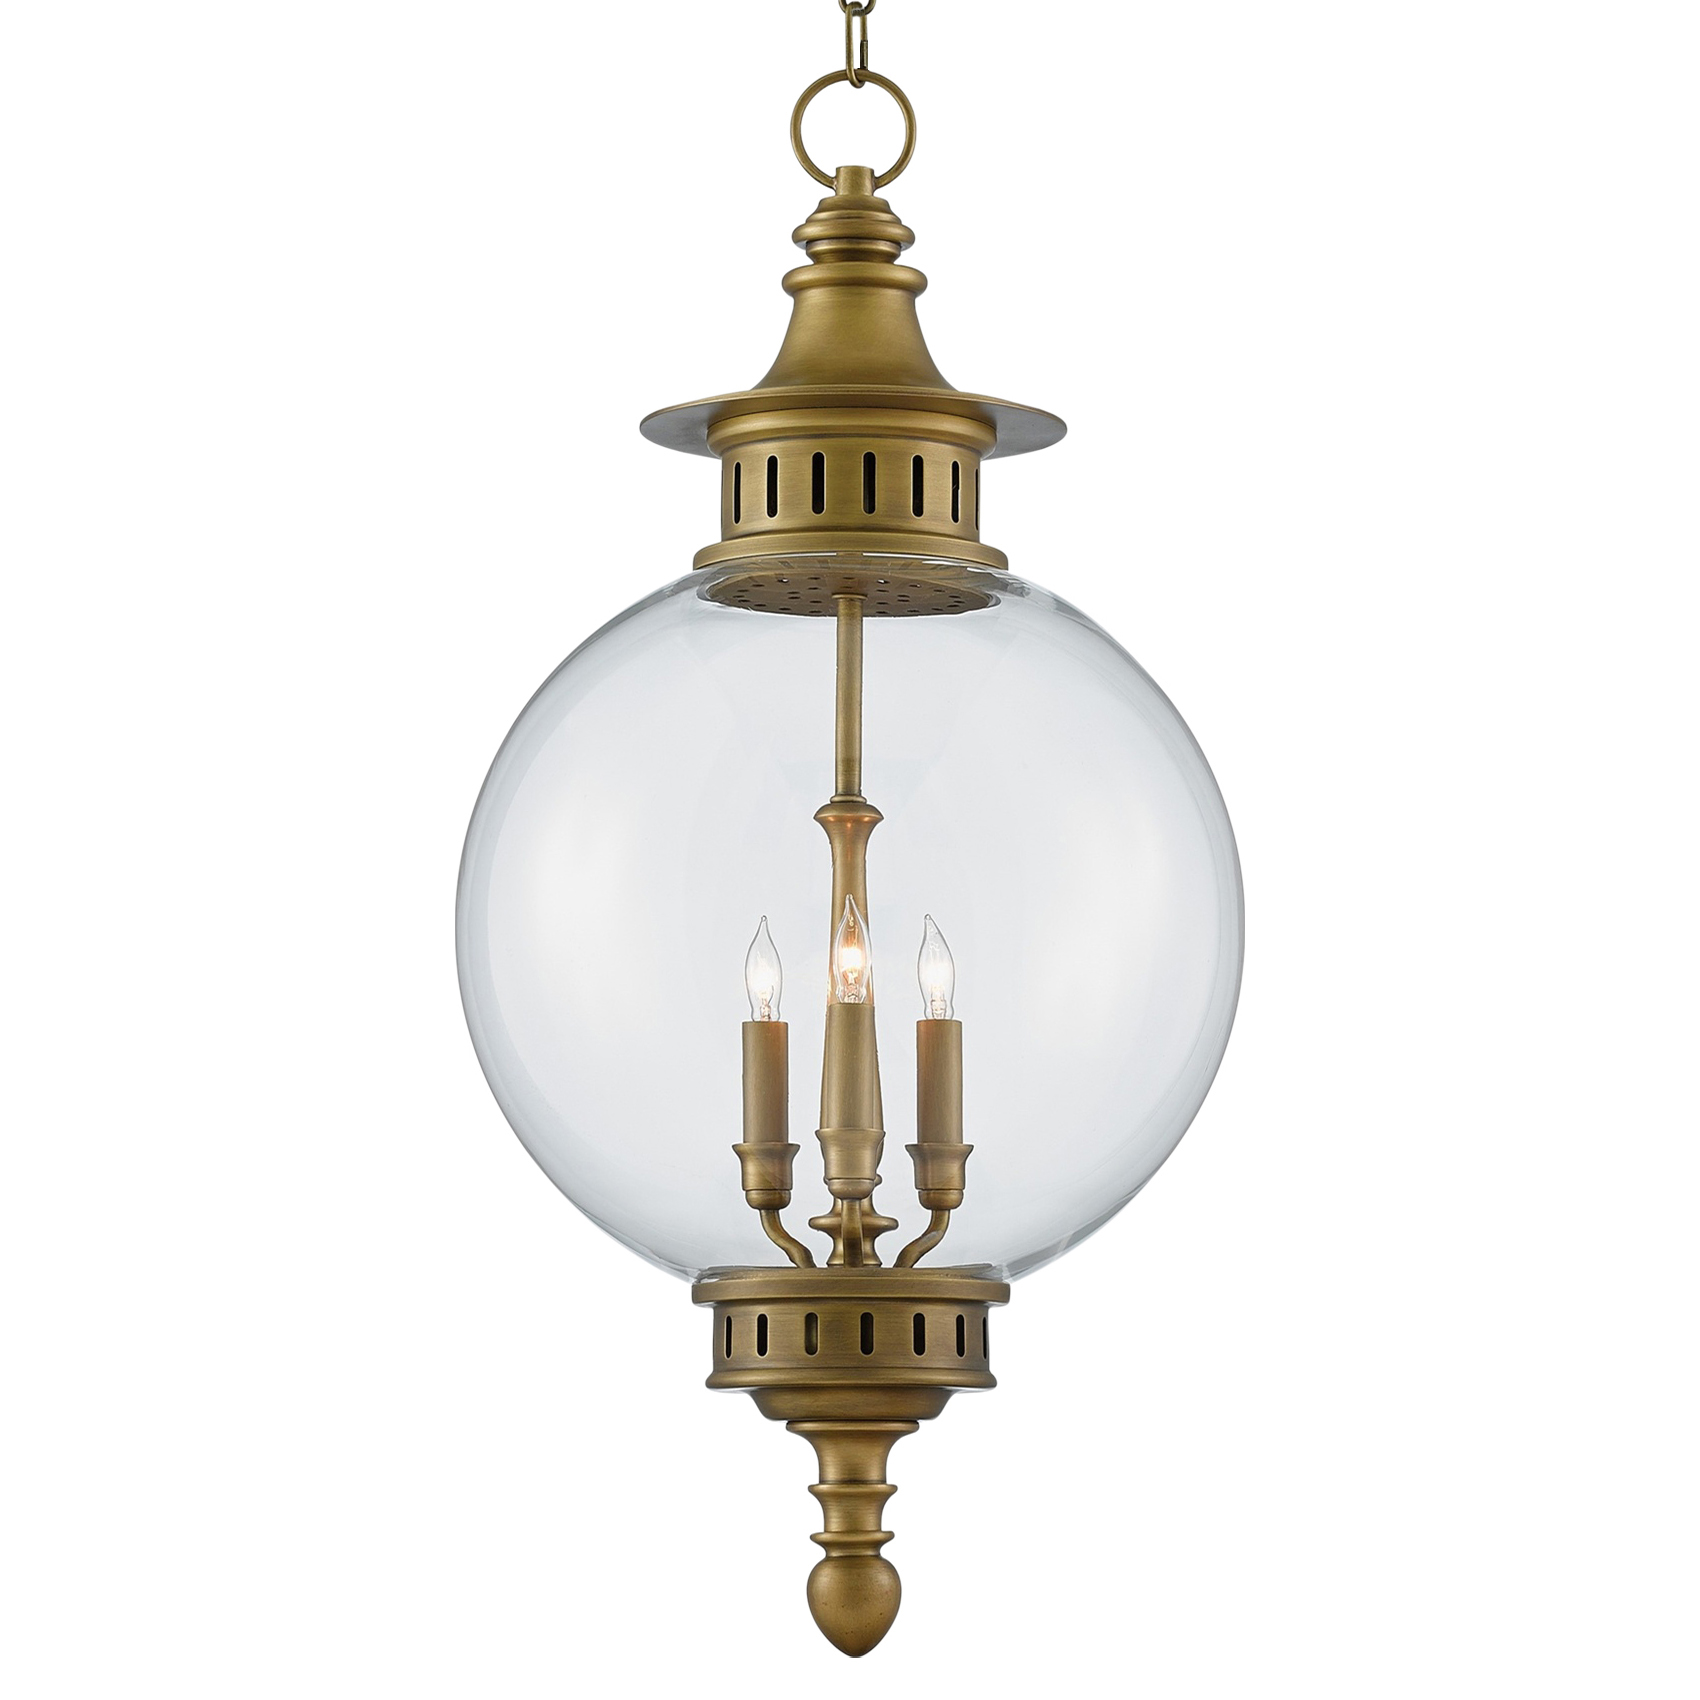 Nautilus Coastal Antique Brass Glass Orb Lantern